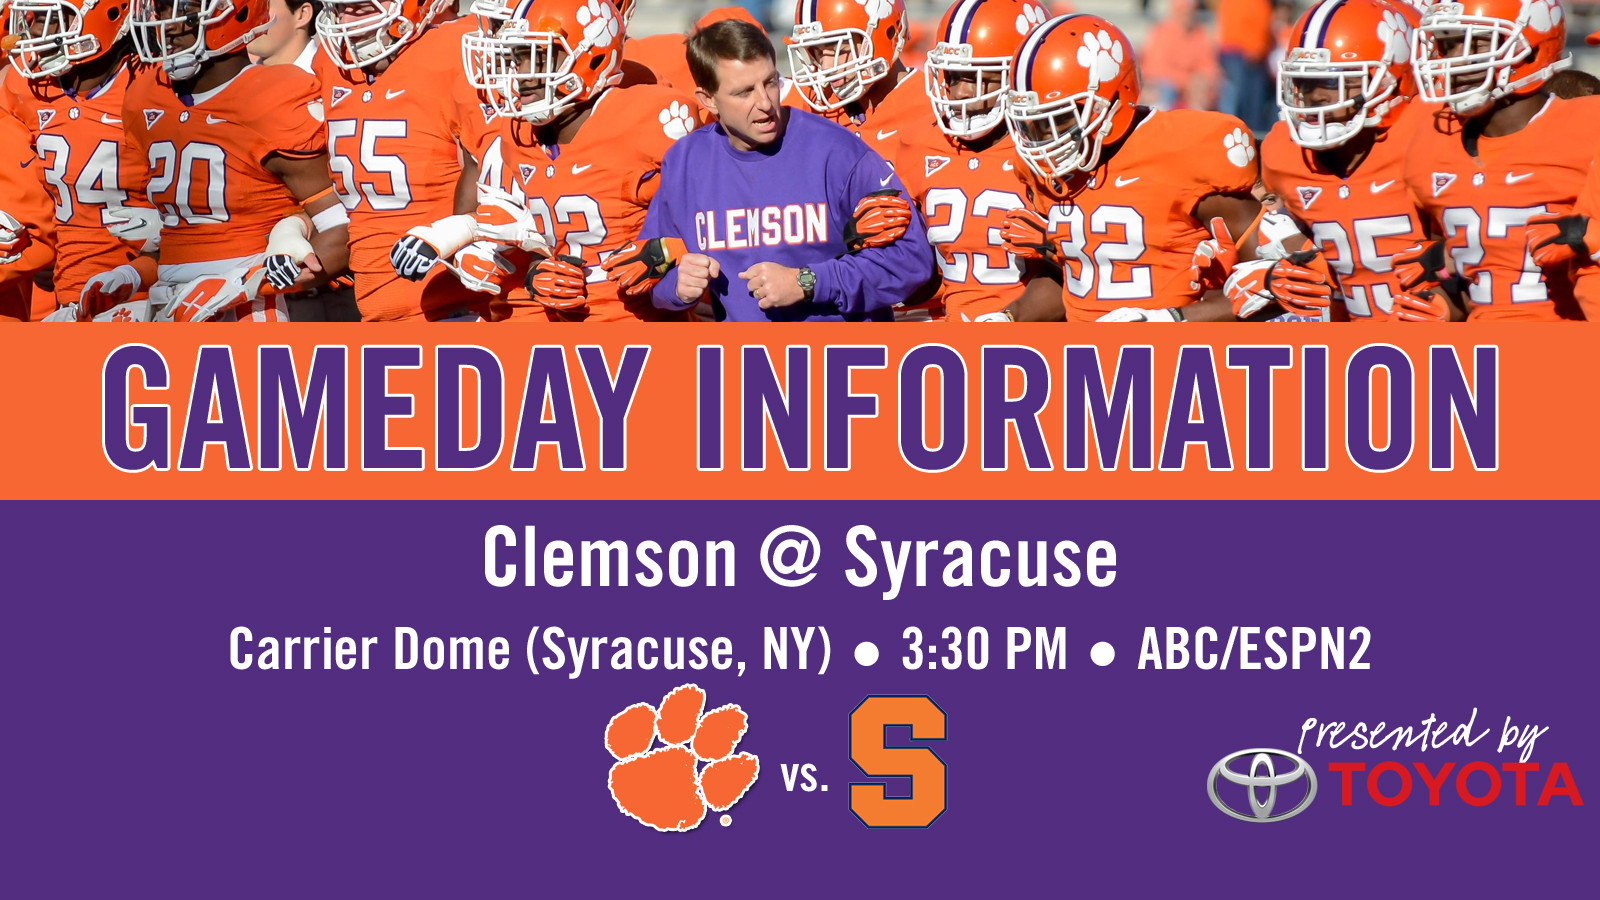 Clemson @ Syracuse Football Gameday Information